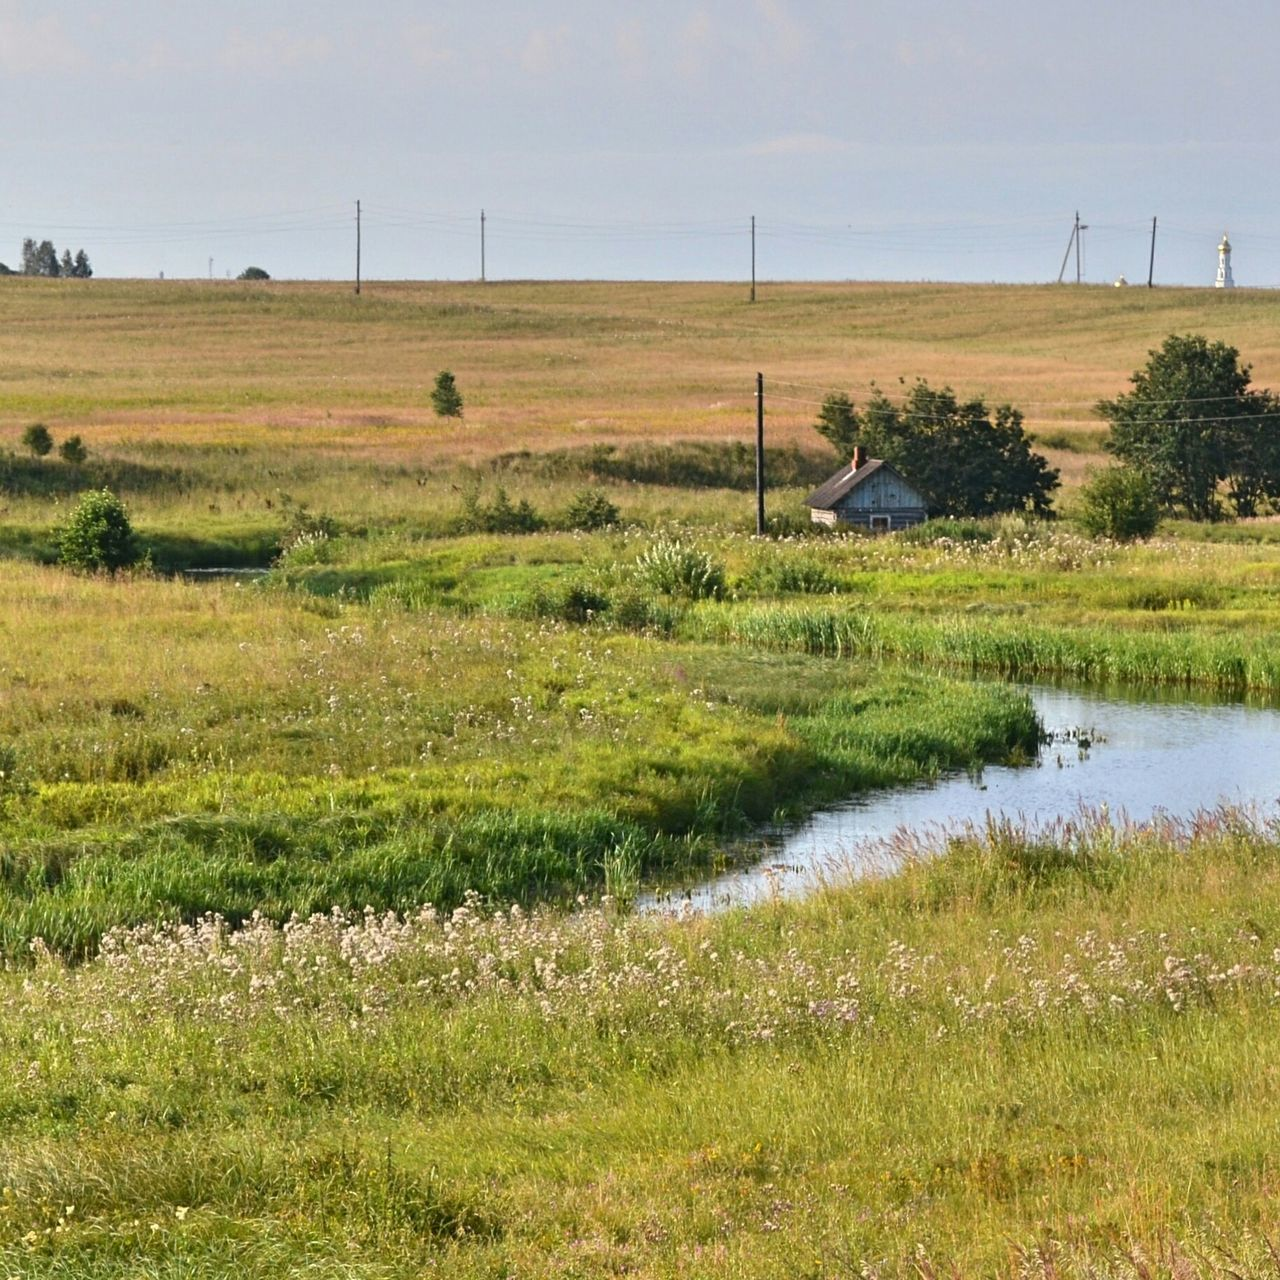 High Angle View Of Stream Amidst Grassy Field Against Sky